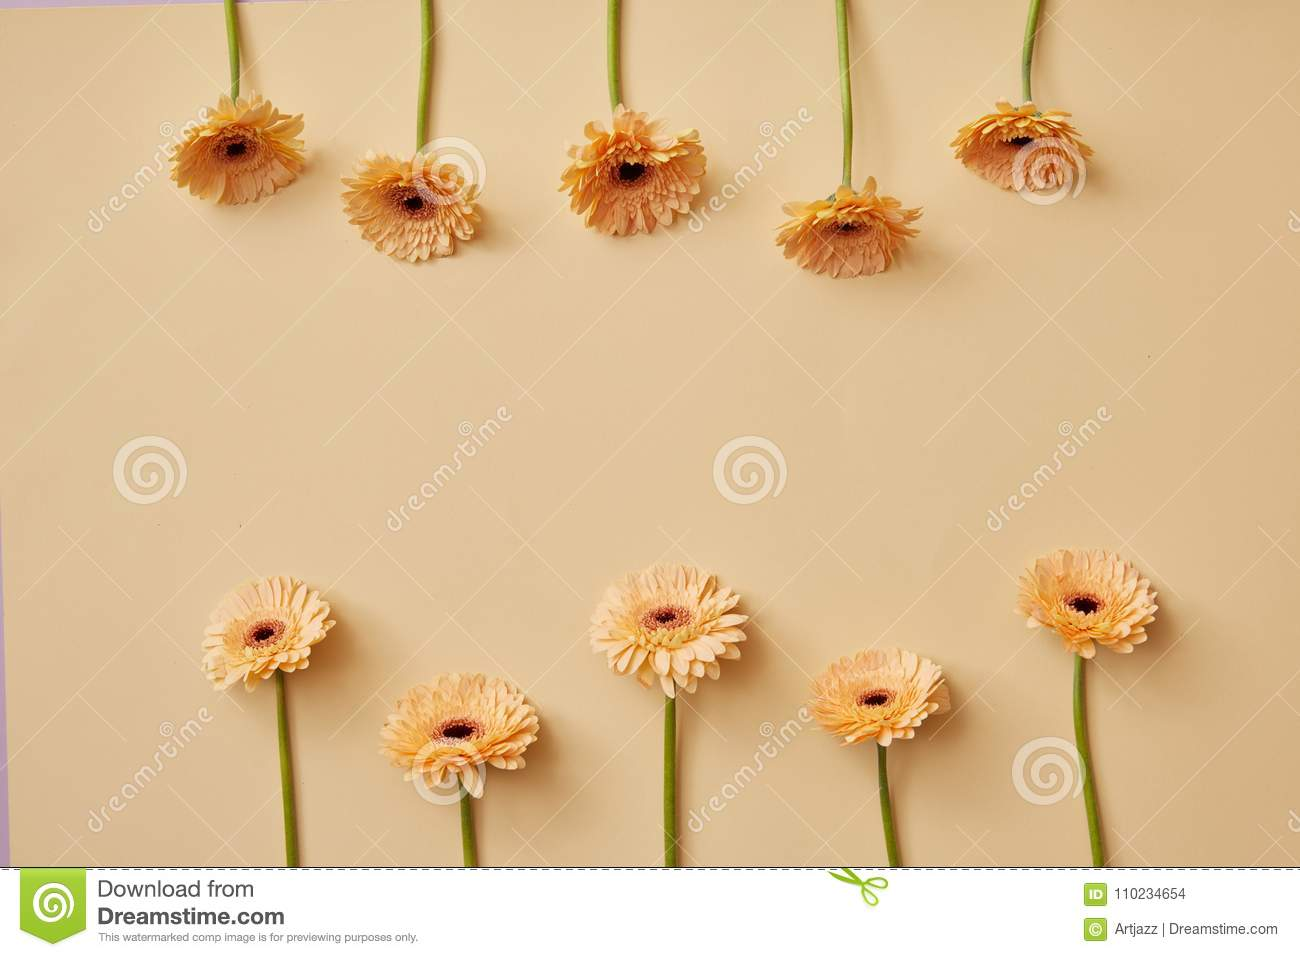 Creative composition of beige flowers gerberas for Valentine`s Day or Mother`s